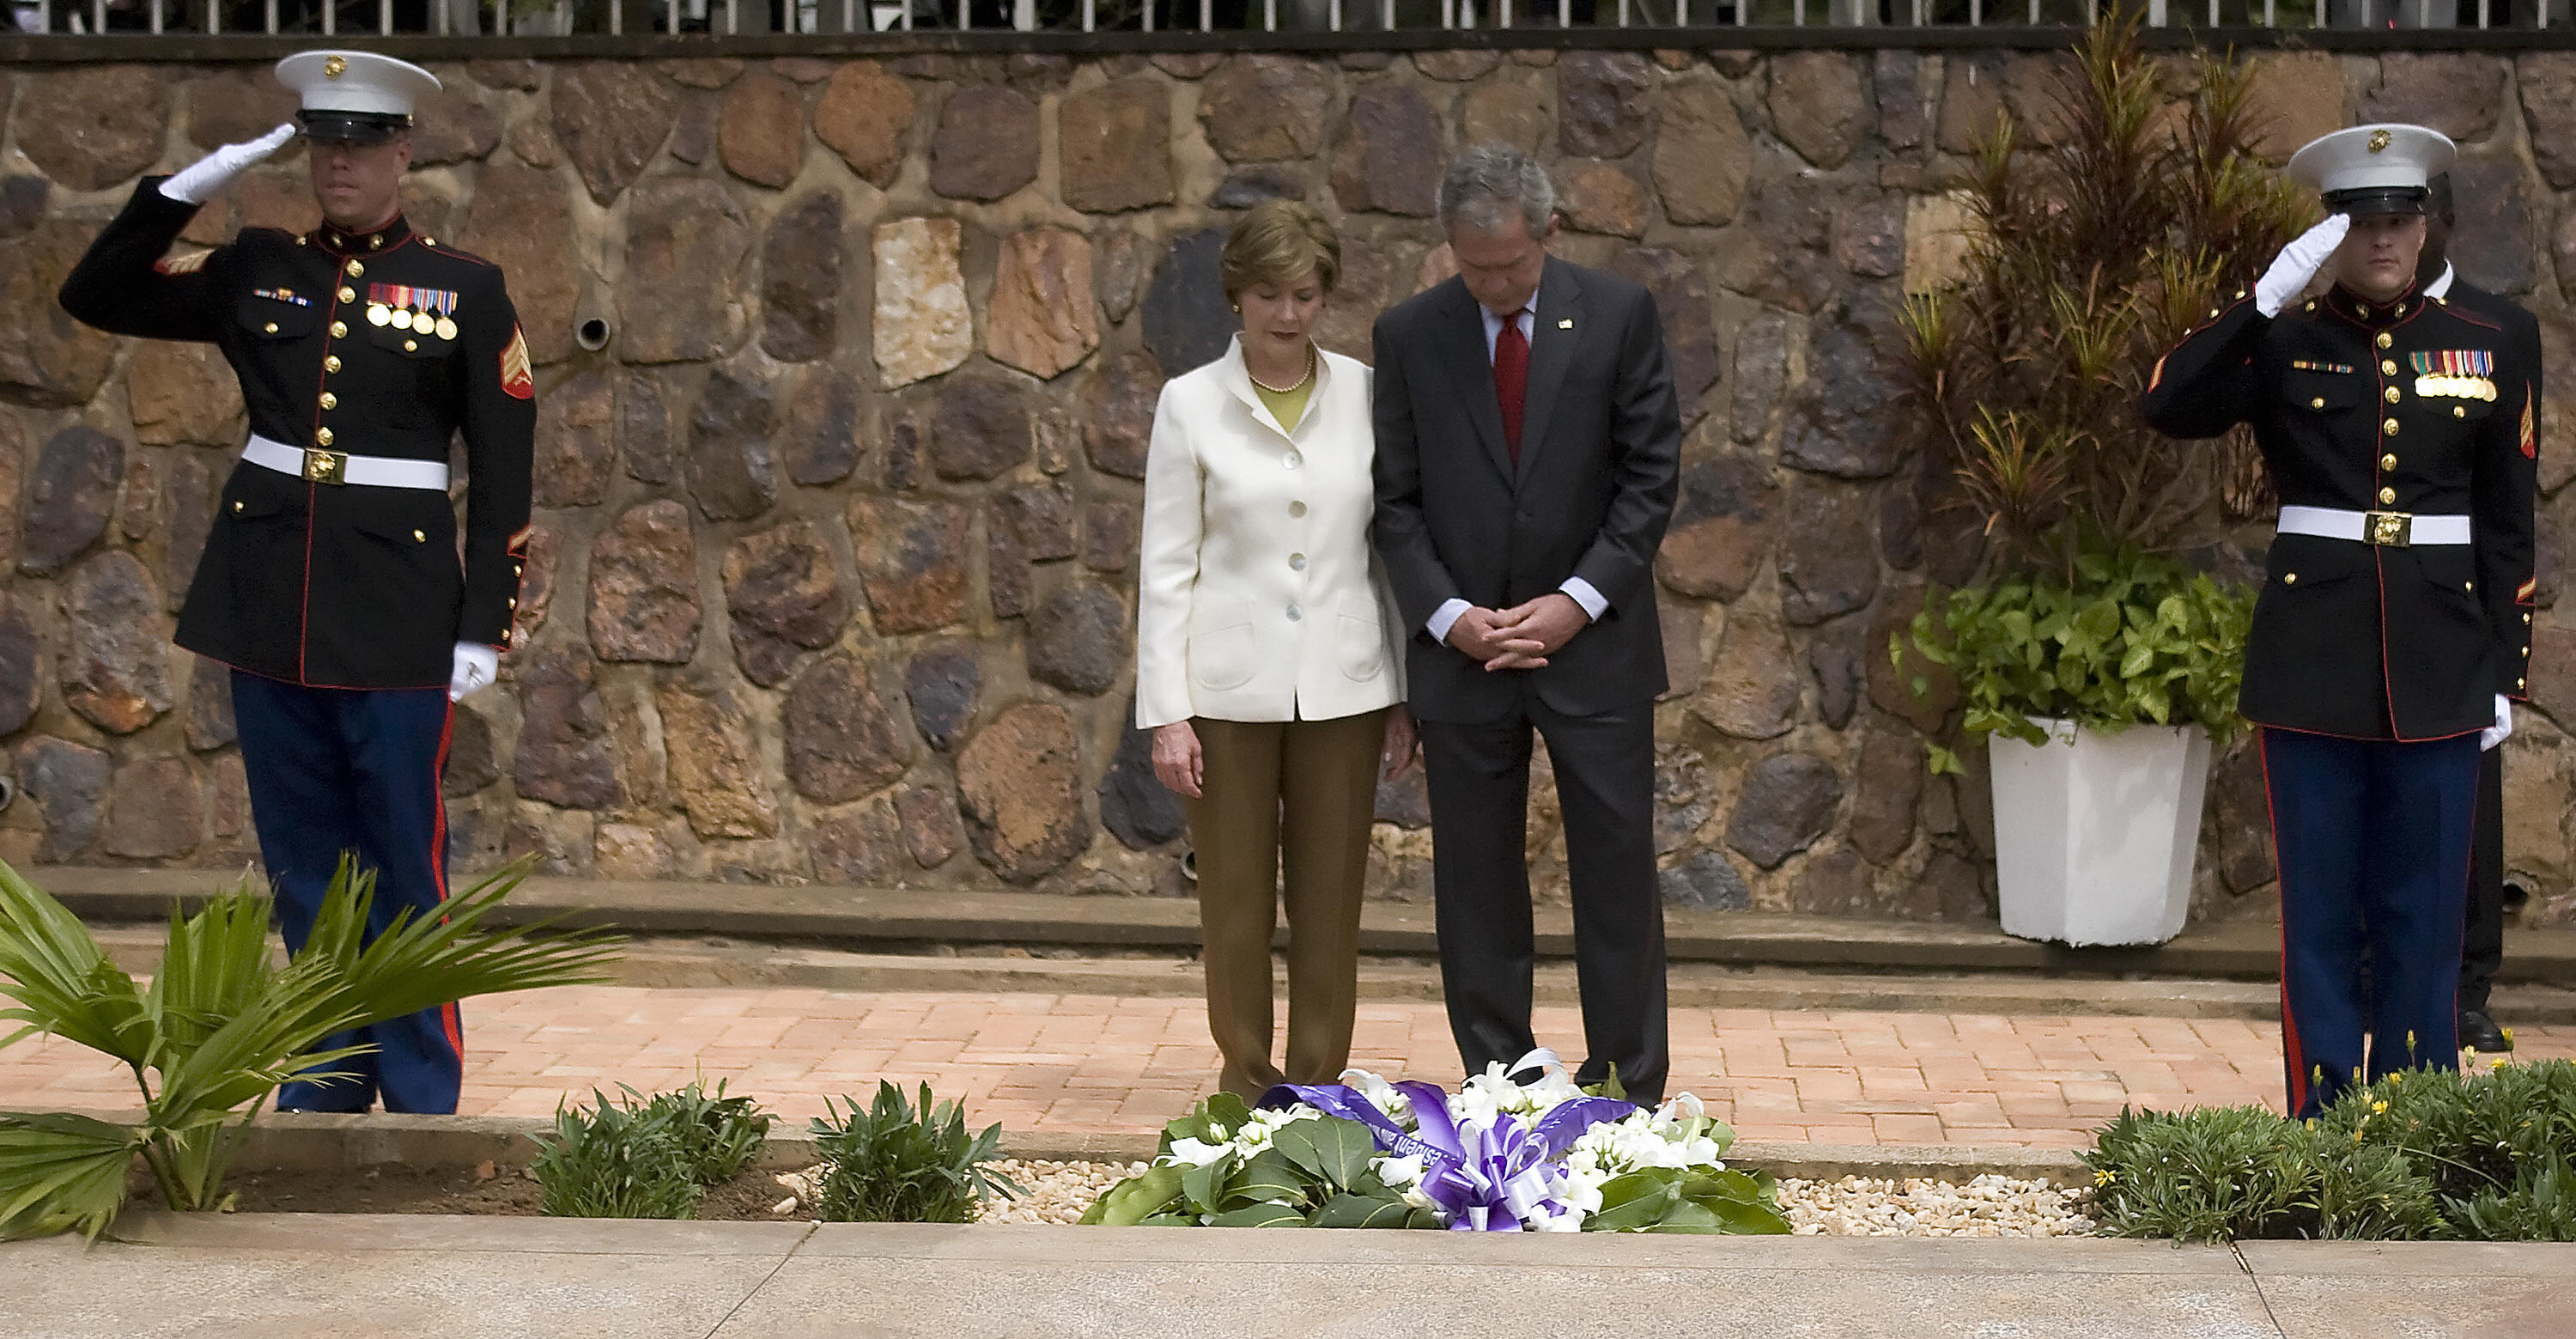 Mr. and Mrs. Bush lay a wreath at a Rwanda genocide memorial.